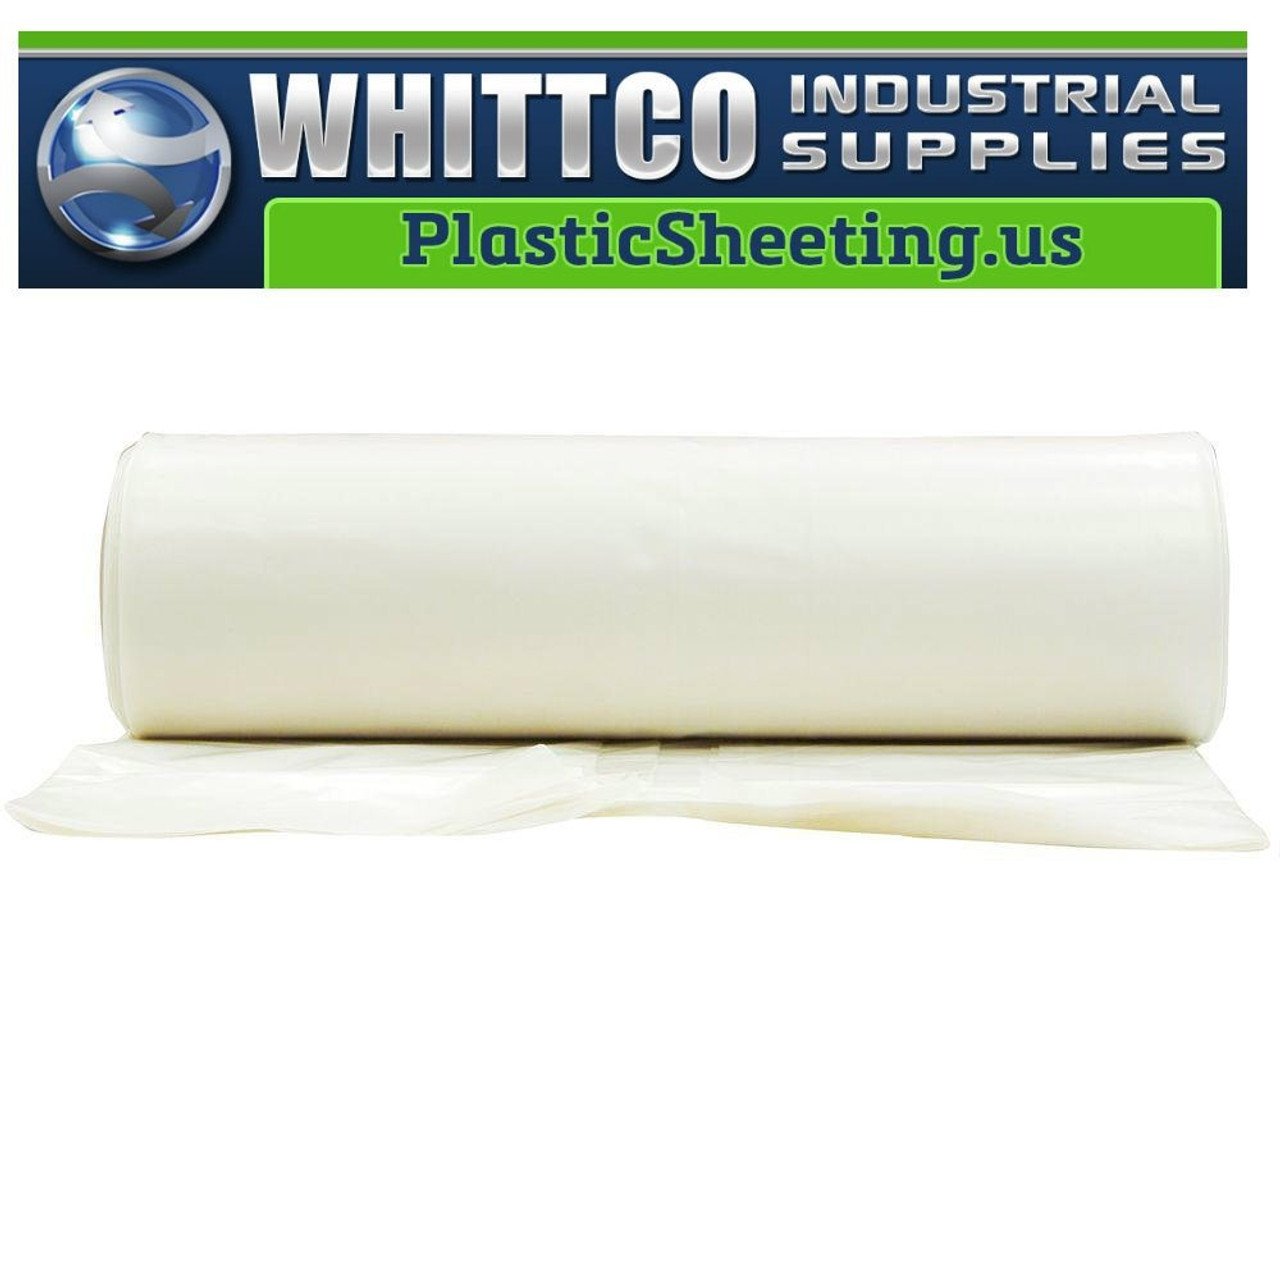 Made in USA Moisture Barrier Husky 40/' x 100/' 4 MIL Clear Plastic Sheeting